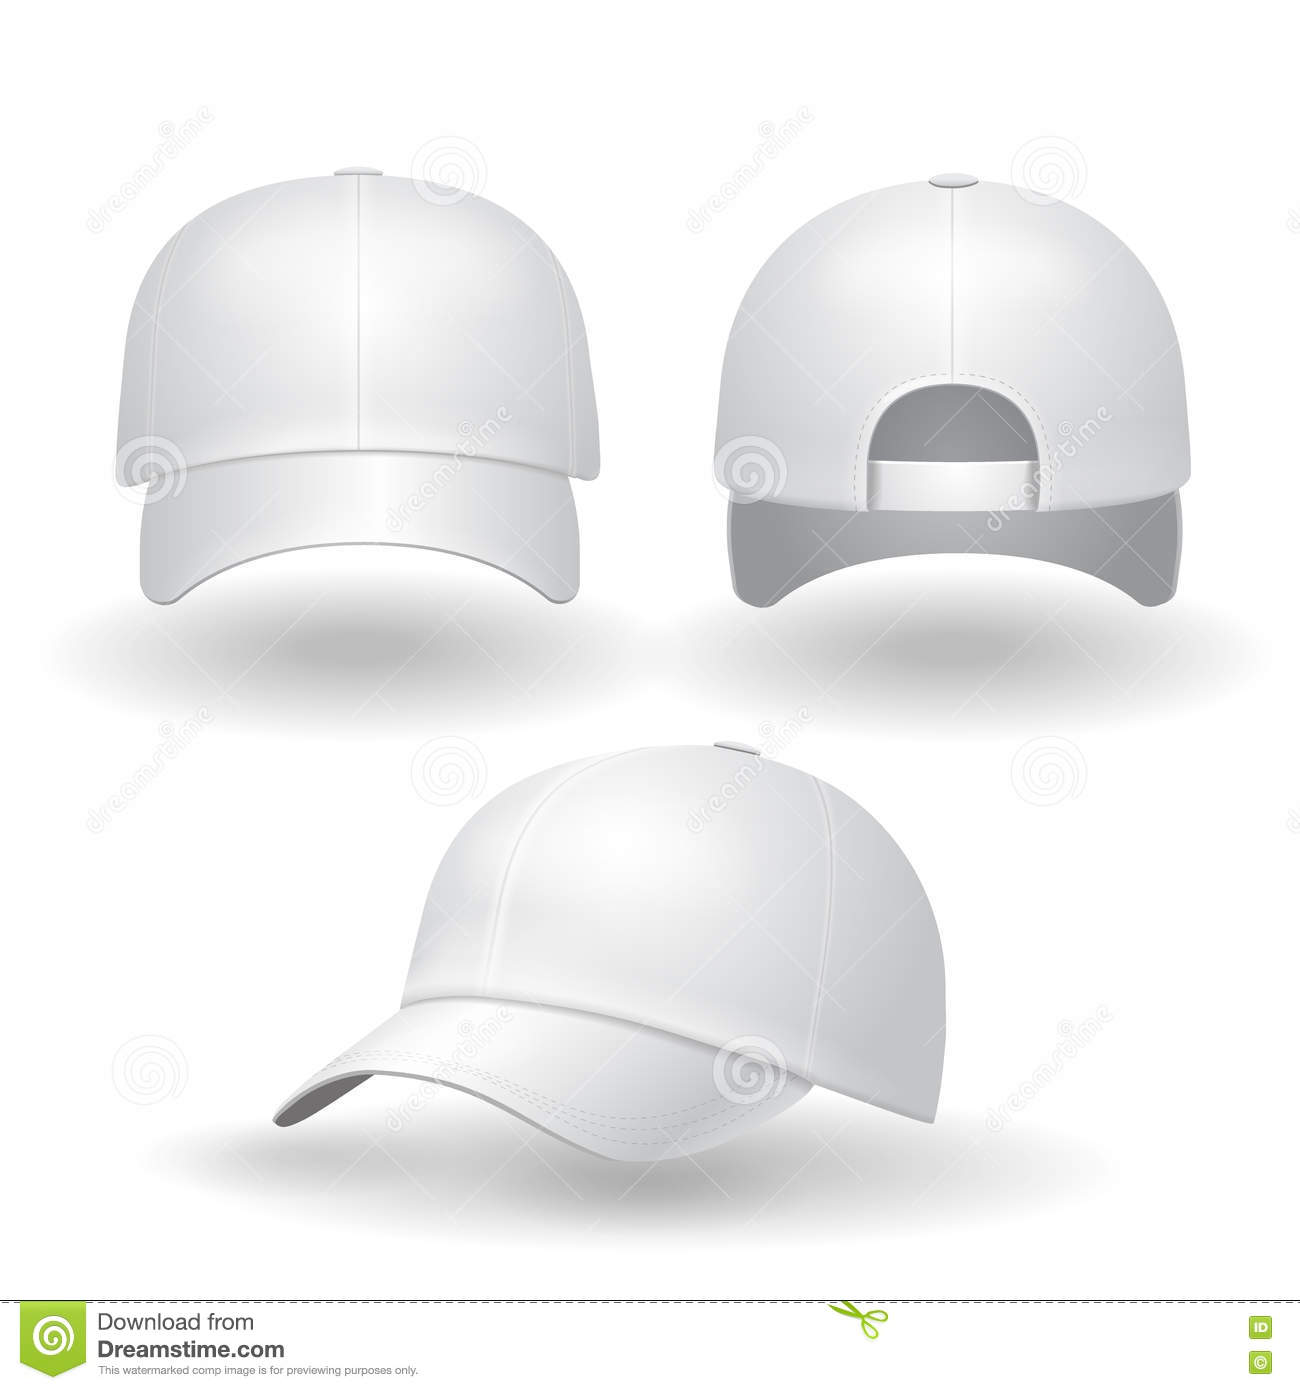 realistic white baseball cap set back front and side view